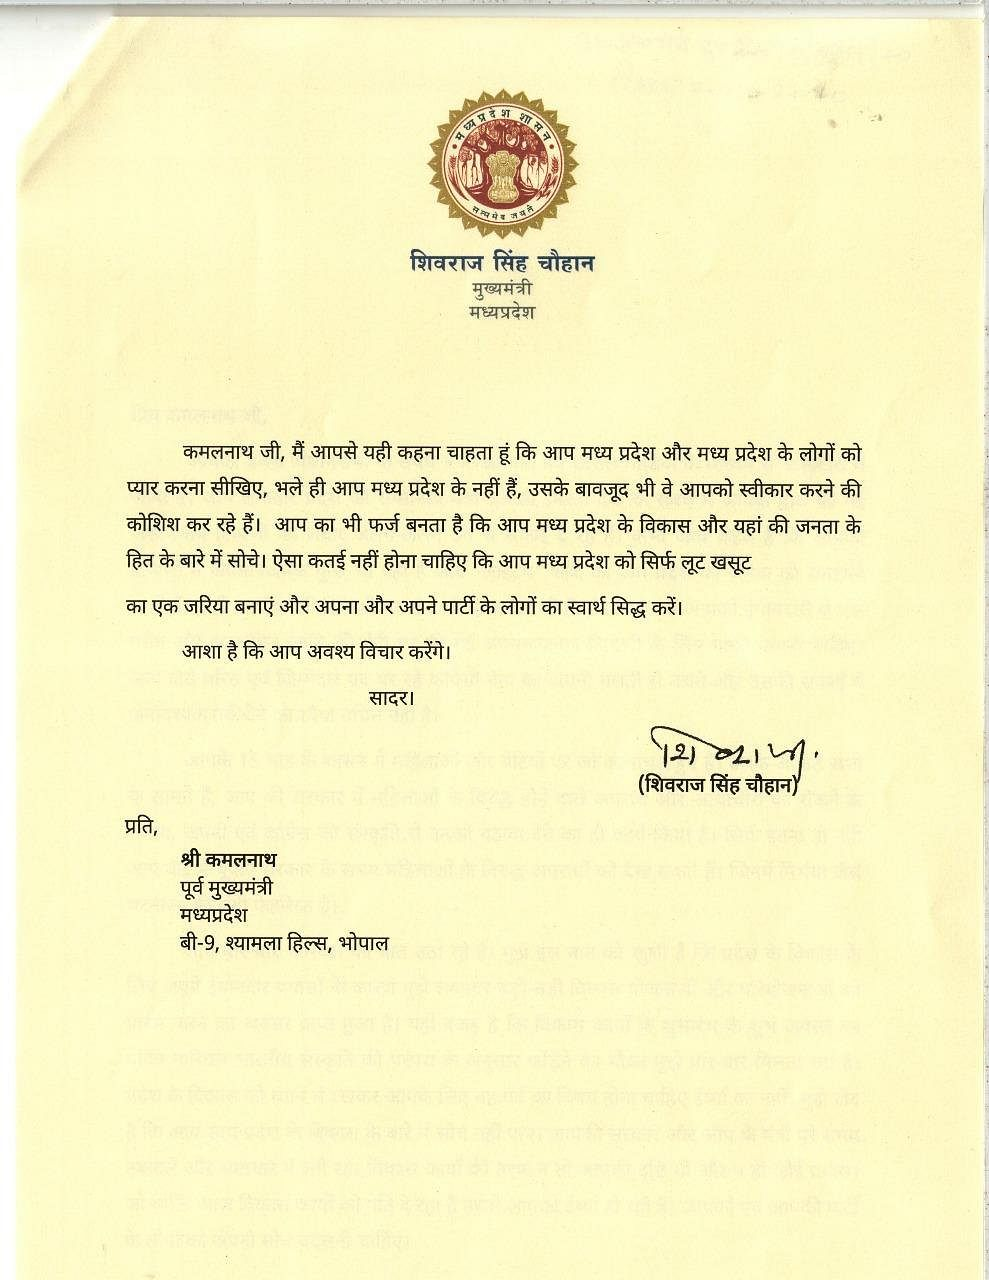 Madhya Pradesh: CM Chouhan replies to Kamal Nath's letter, says learn to love people of the state